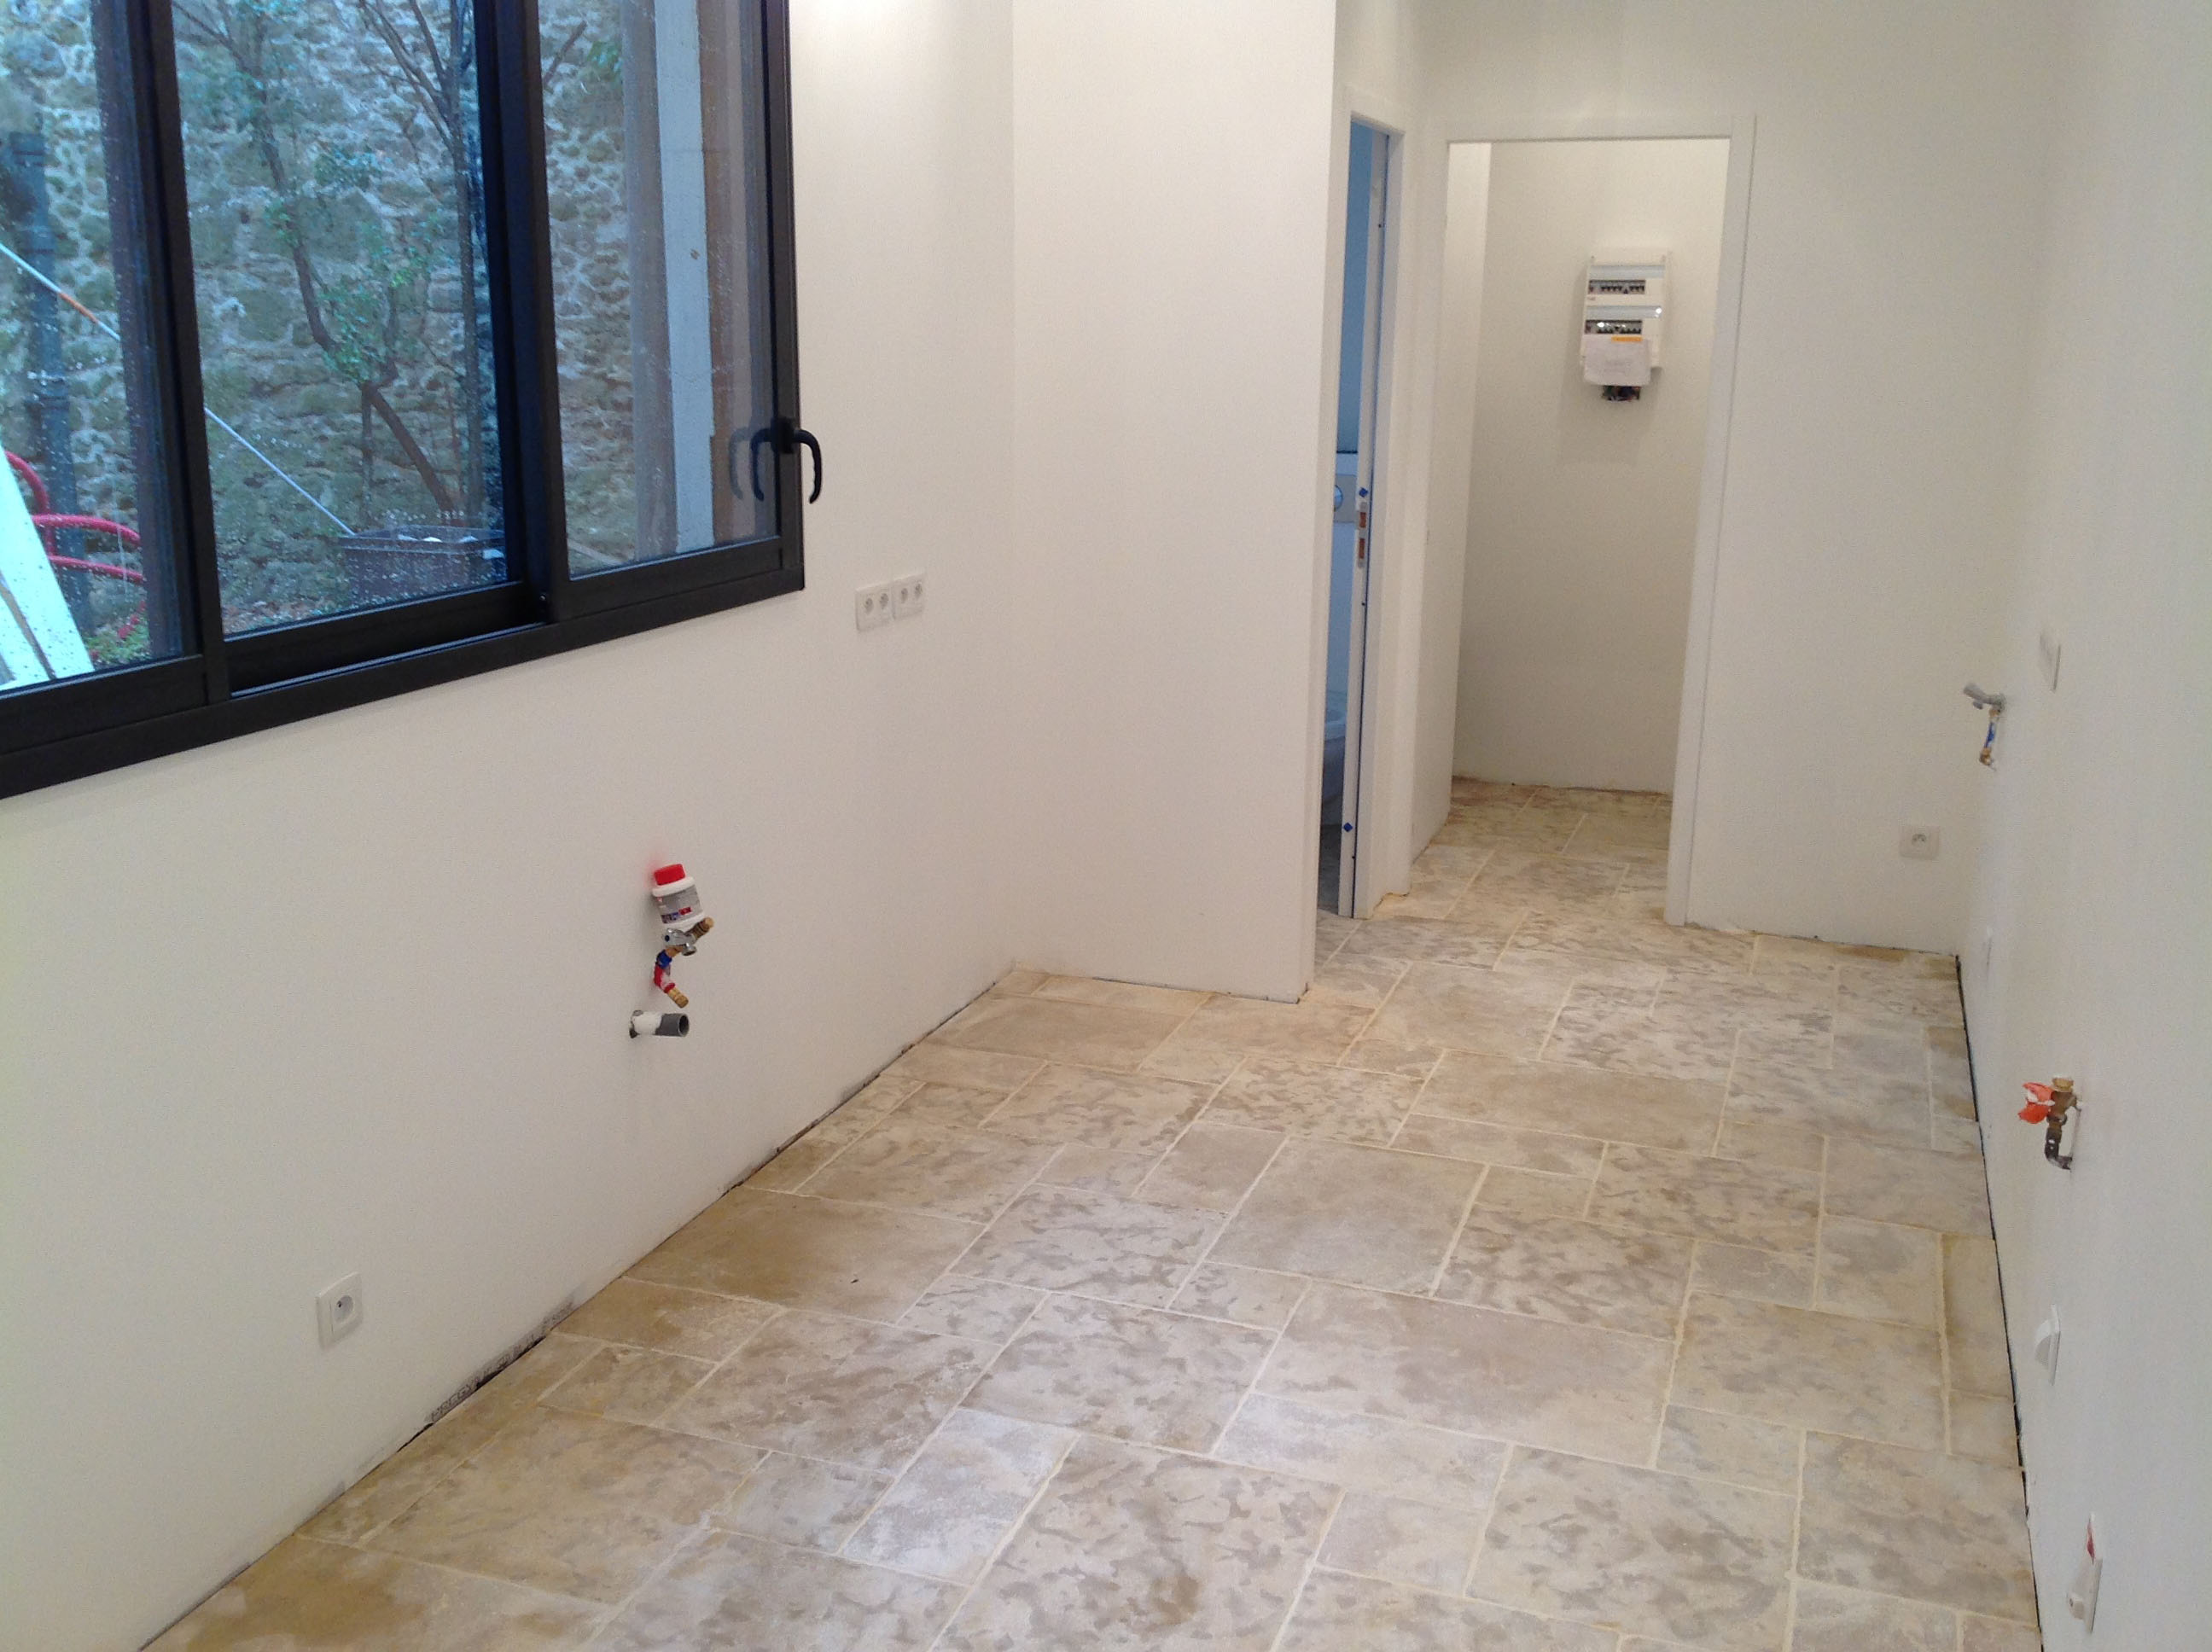 Salle De Bain Beton Bois ~ ma maison lps great elegant simple photo taken at ma maison de caf